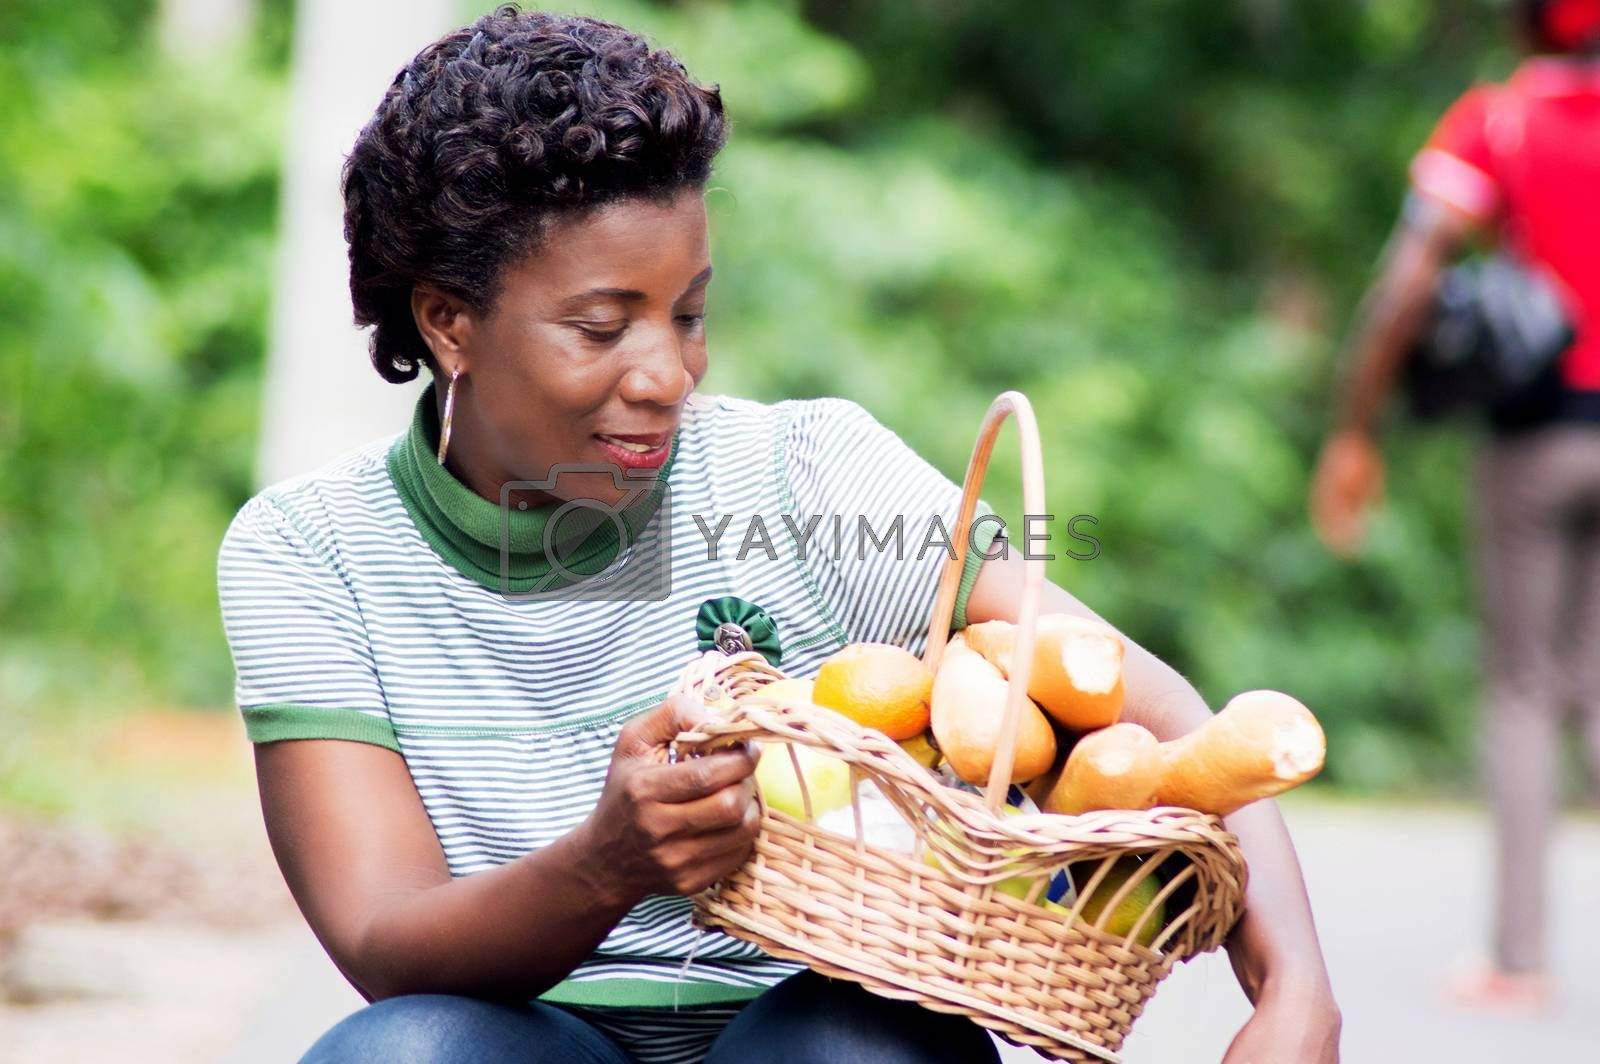 crouching young woman holds on her thigh a food basket by vystekimages